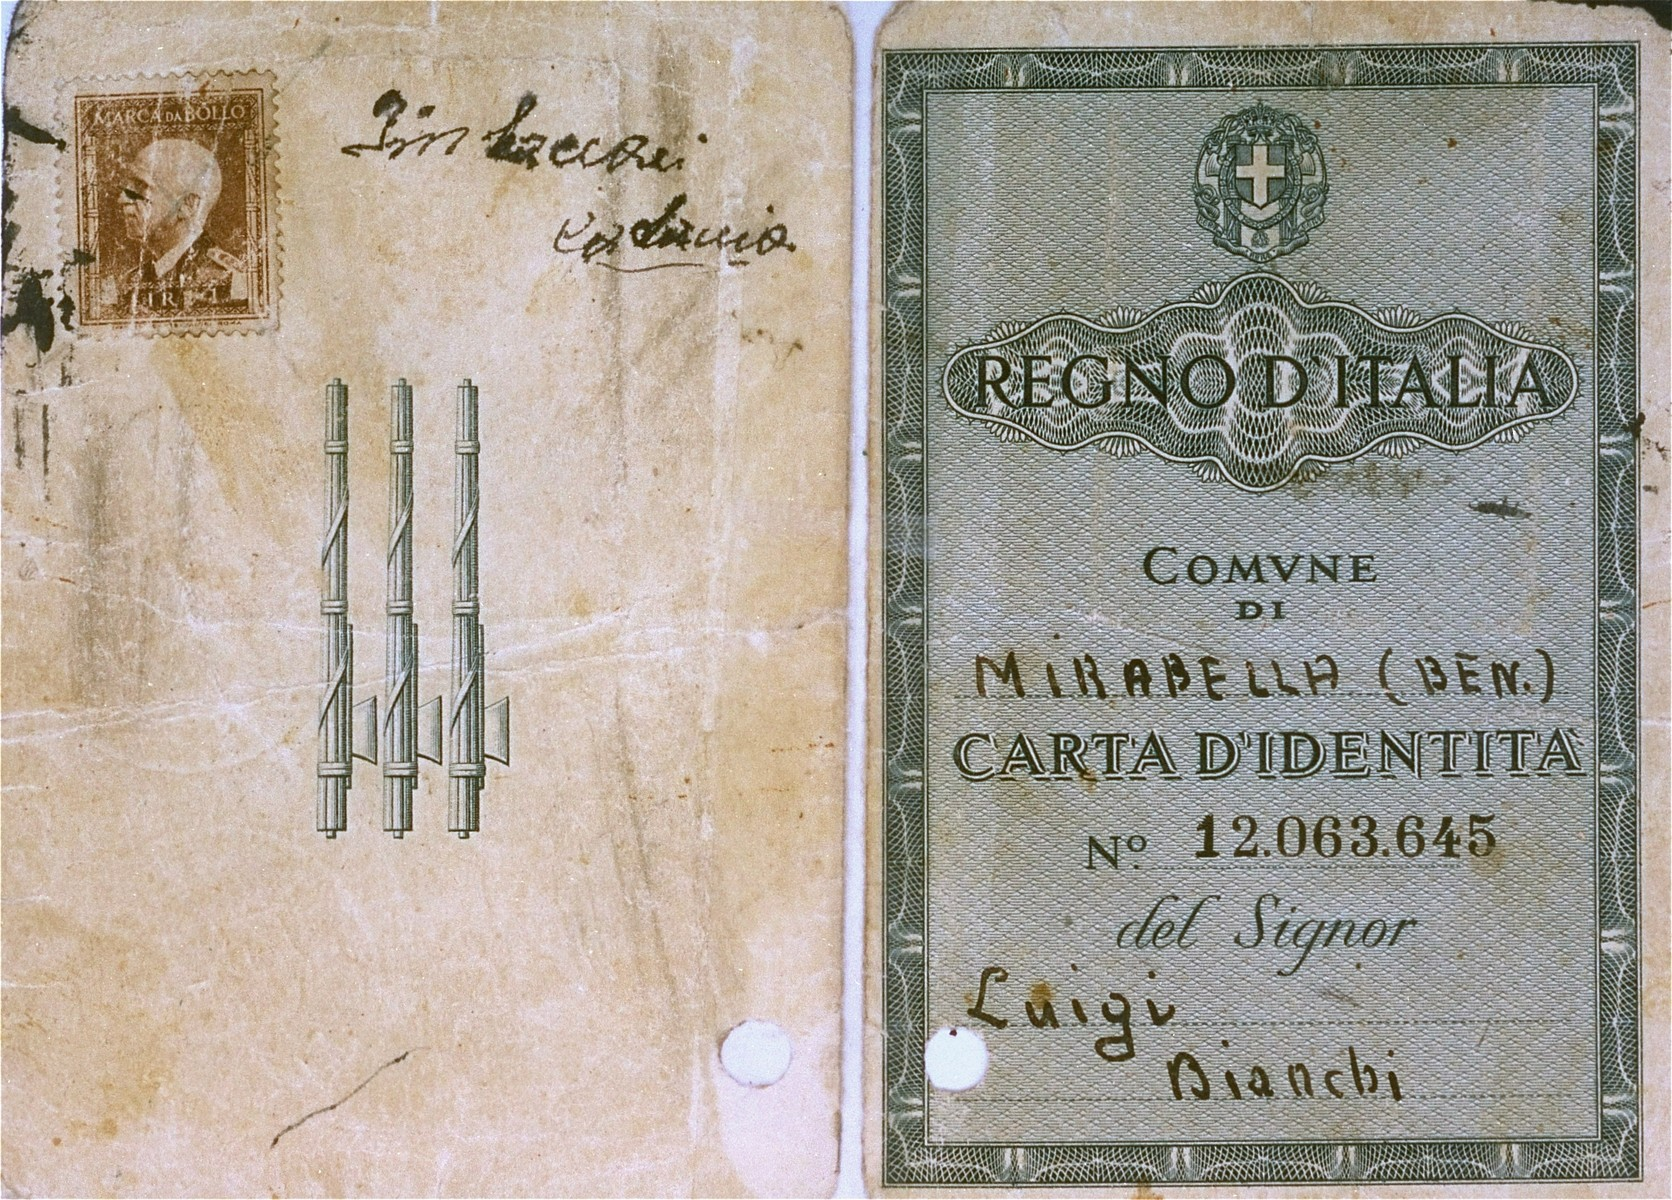 """Cover of a false identification card issued by local church authorities to the Croatian Jew, Zdenko Bergl, who was then living in """"free-confinement"""" with the Mitrani-Andreoli family in Modena, Italy, under the name of Luigi Bianchi.    The identity card, which was issued after the armistice and the German occupation of Italy, registered his place of birth as Bari, a town in the part of Italy already under Allied control.  Verification was therefore impossible.  The donor, Zdenko Bergl was born August, 1929 in St. Ivan Zabno in Croatia.  He is the son of Nandor Bergl, a businessman, and Ilonka Bergl.  Zdenko survived the war in hiding in Croatia and Italy.  In August 1941 as a twelve year old boy, Zdenko left his hometown and went into hiding in Susak, Croatia.  He remained there for six months before fleeing over the border to Modena, Italy.  He succeeded in securing false papers from the local church authorities and lived in """"free-confinement"""" with the Mitrani-Andreoli family in Modena until September 1943.  From Modena Bergl continued on to Florence where he stayed with the family of Neila Fussi until the end of the war in August 1944.  Afterwards he resided in the Cinecitta DP camp in Rome.  When he completed high school in September 1947 he moved to Lake Como, Italy.  In 1949 he succeeded in obtaining immigration papers for the U.S.  Bergl sailed aboard the U.S. Army transport vessel, Marina Jumper, from Naples to New York in November 1949."""